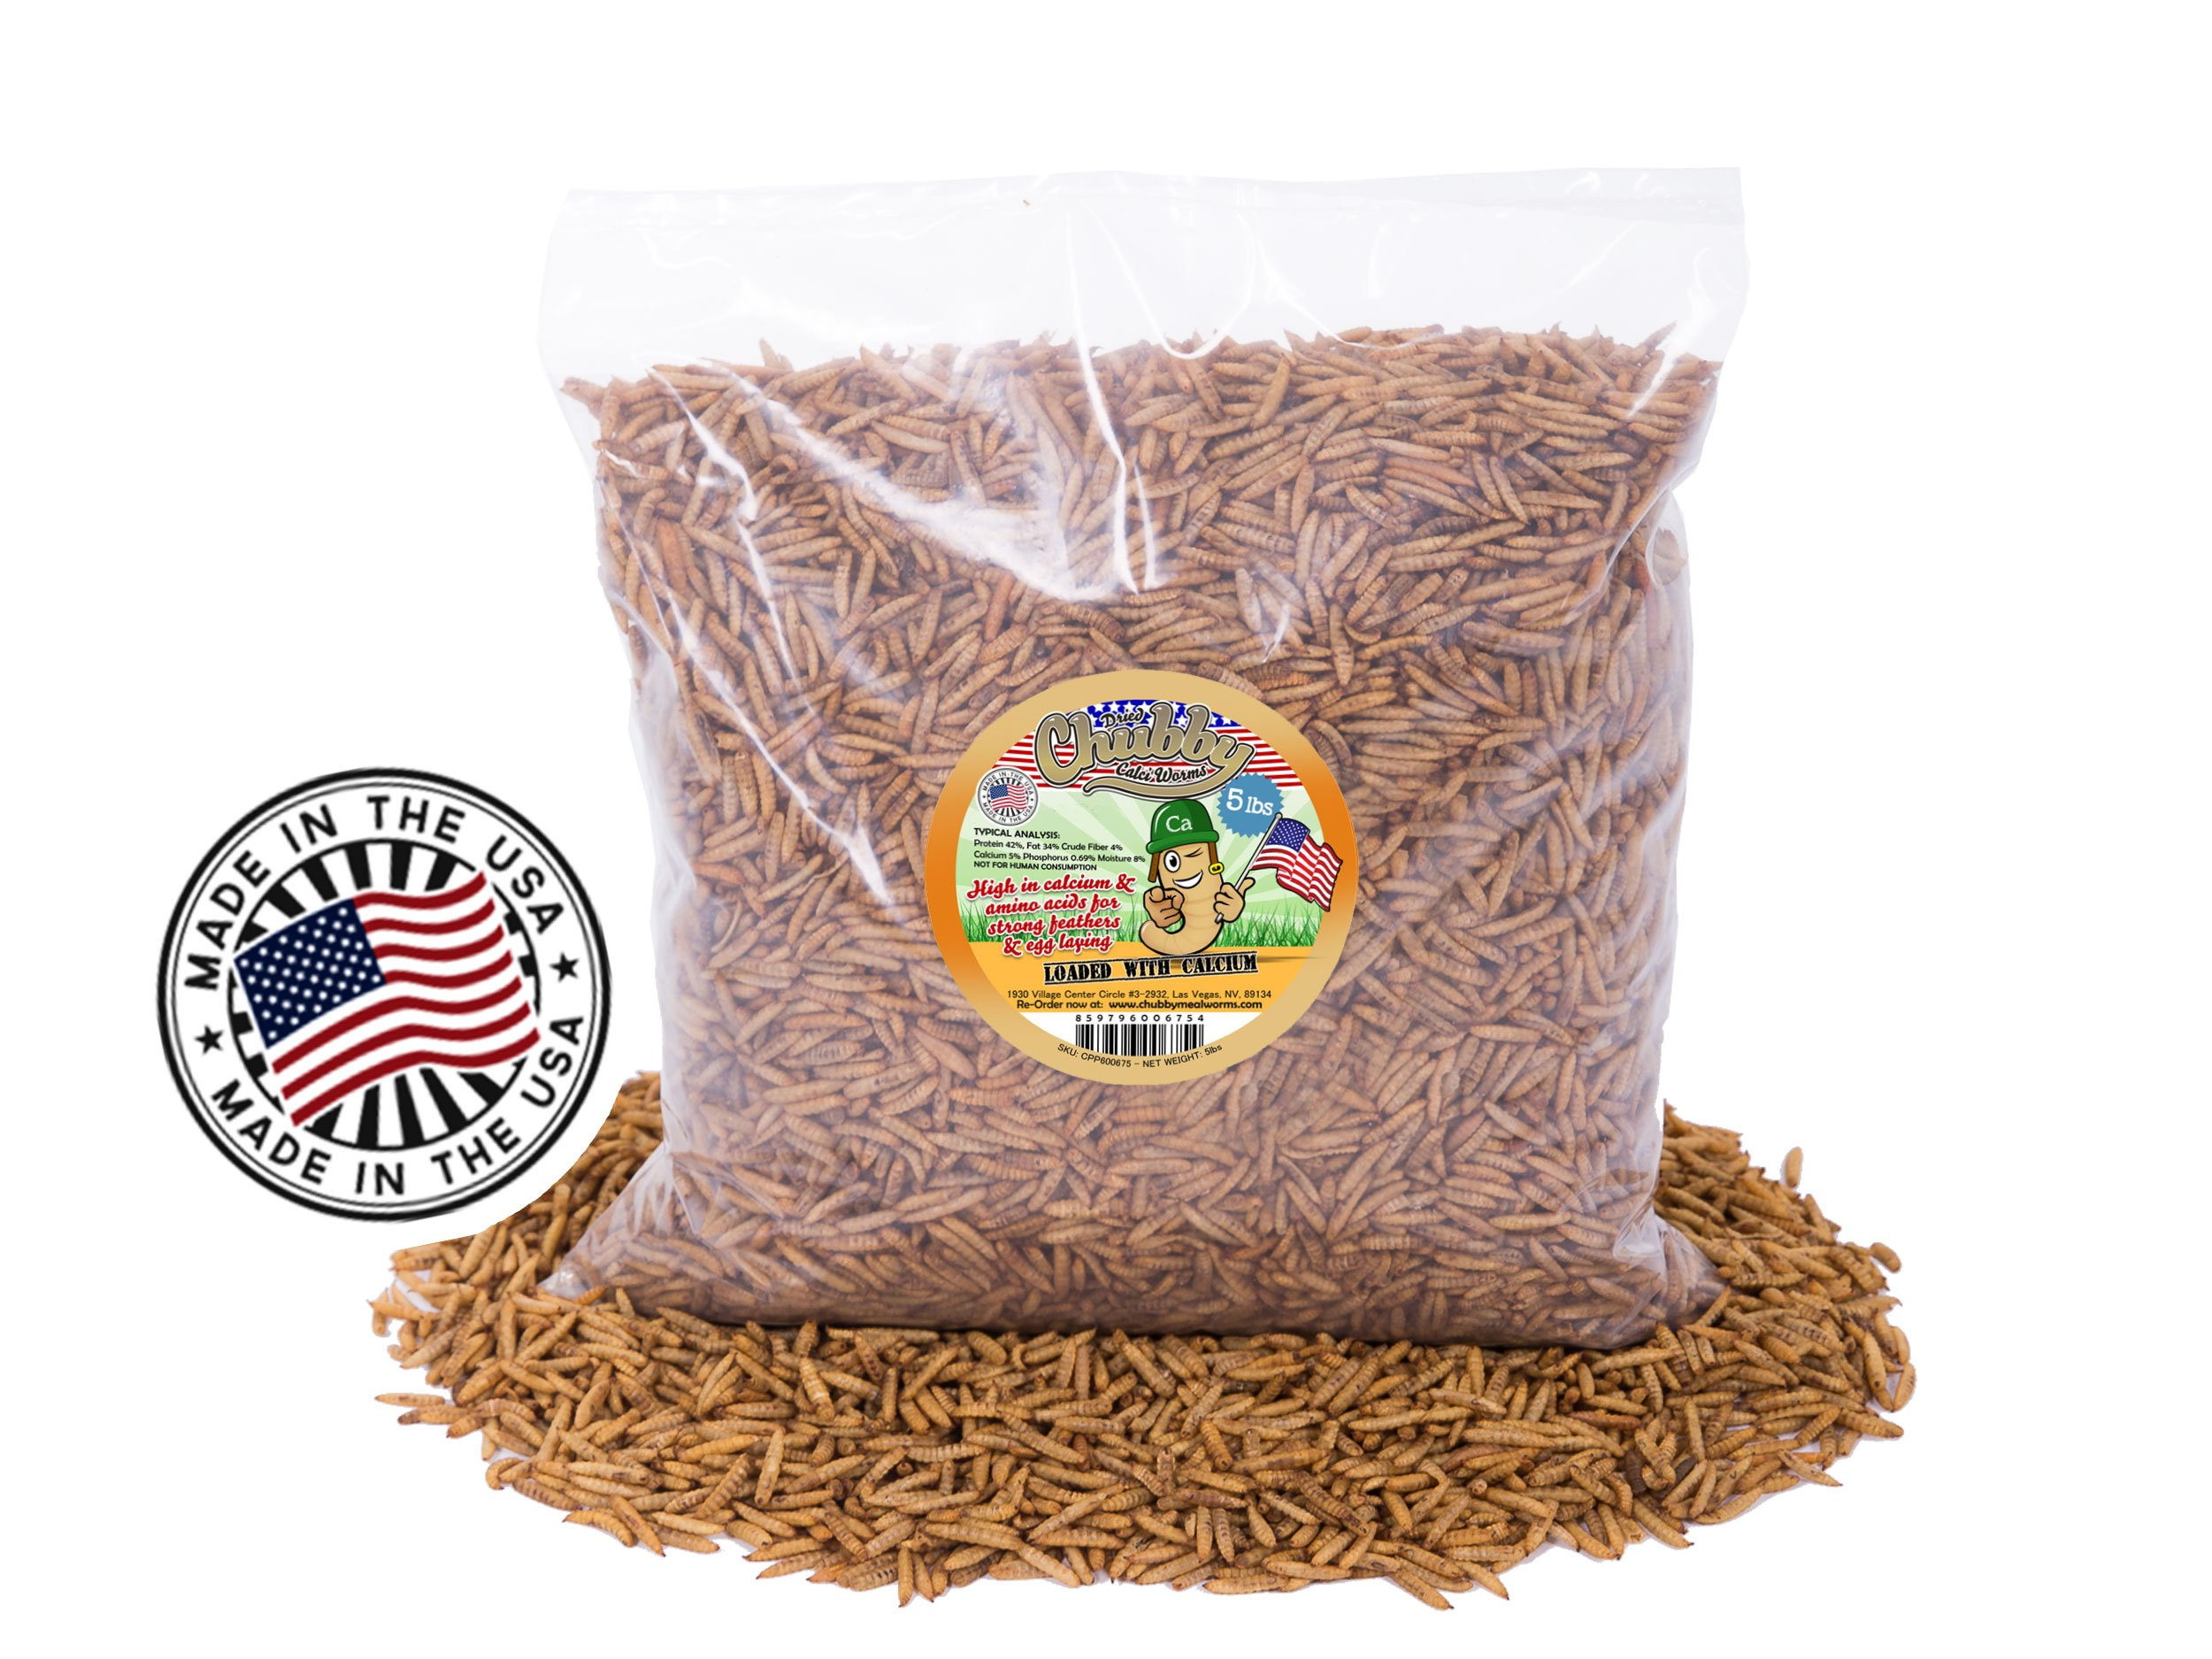 5Lbs Chubby Dried Calci Worms - 100% MADE IN THE USA - Black Soldier Fly Larvae - Wild Bird/Chicken Treats